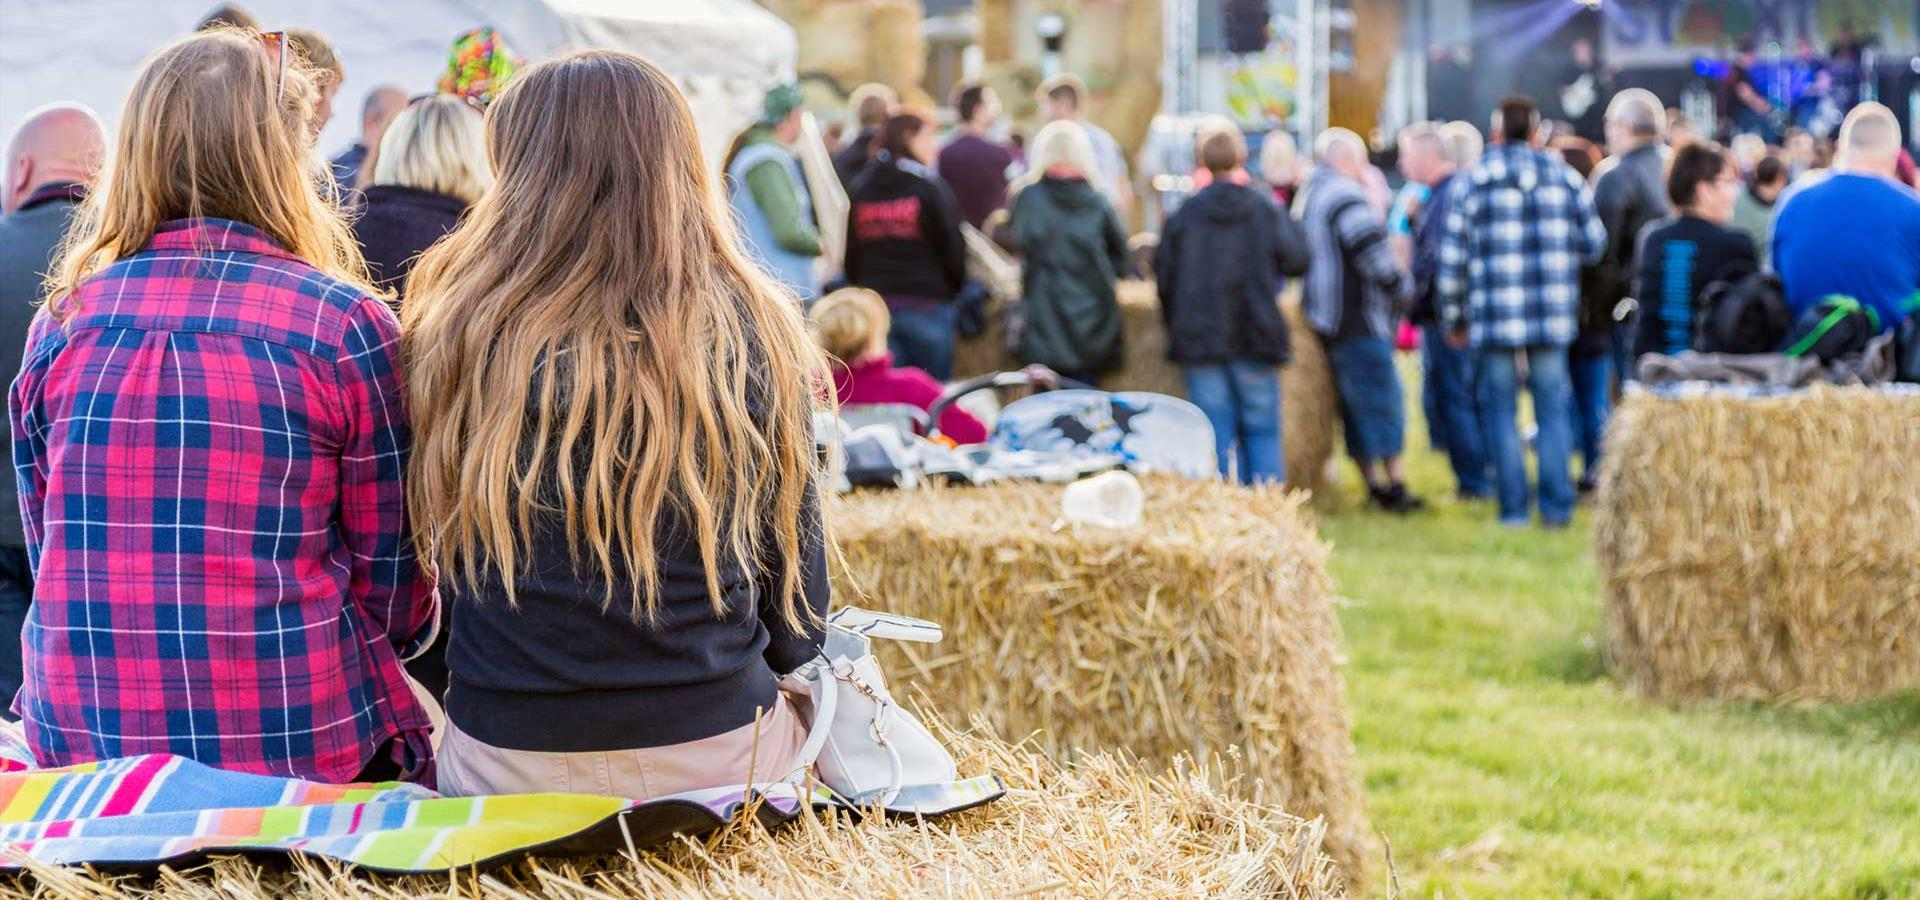 An image of Staxtonbury Festival - Ravage Productions